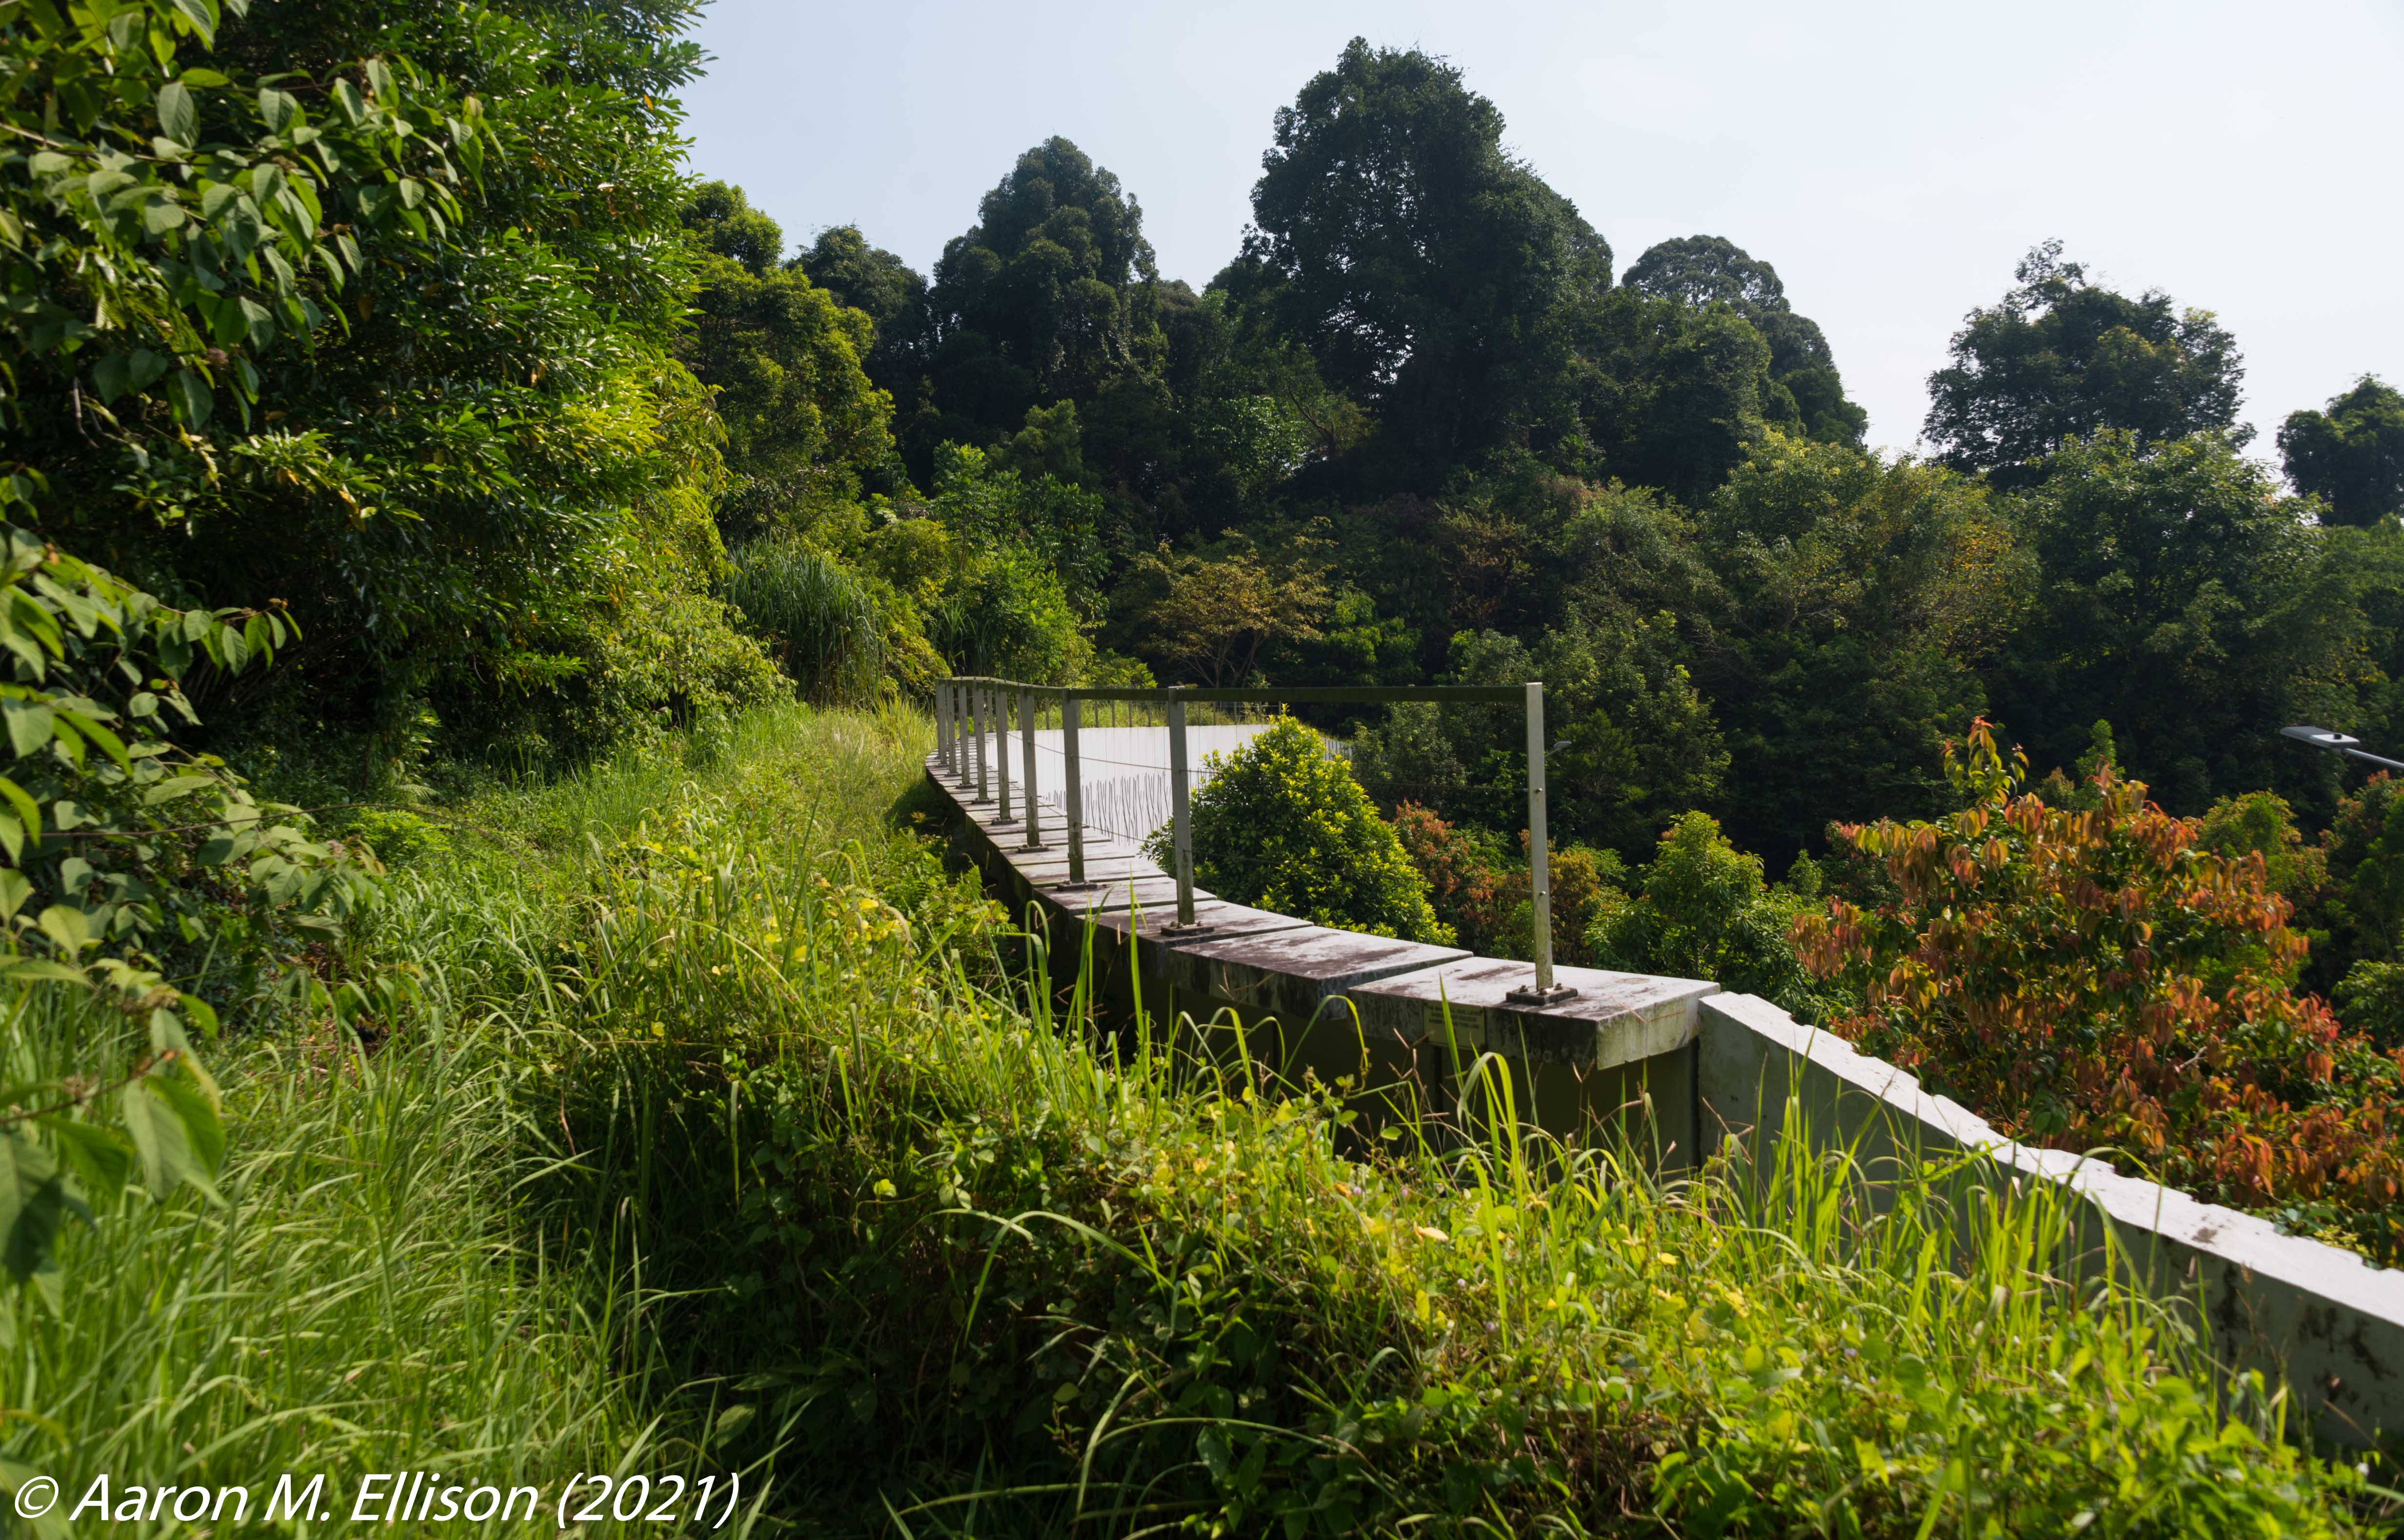 A photo of the Eco-Link over the Bukit Timah Expressway